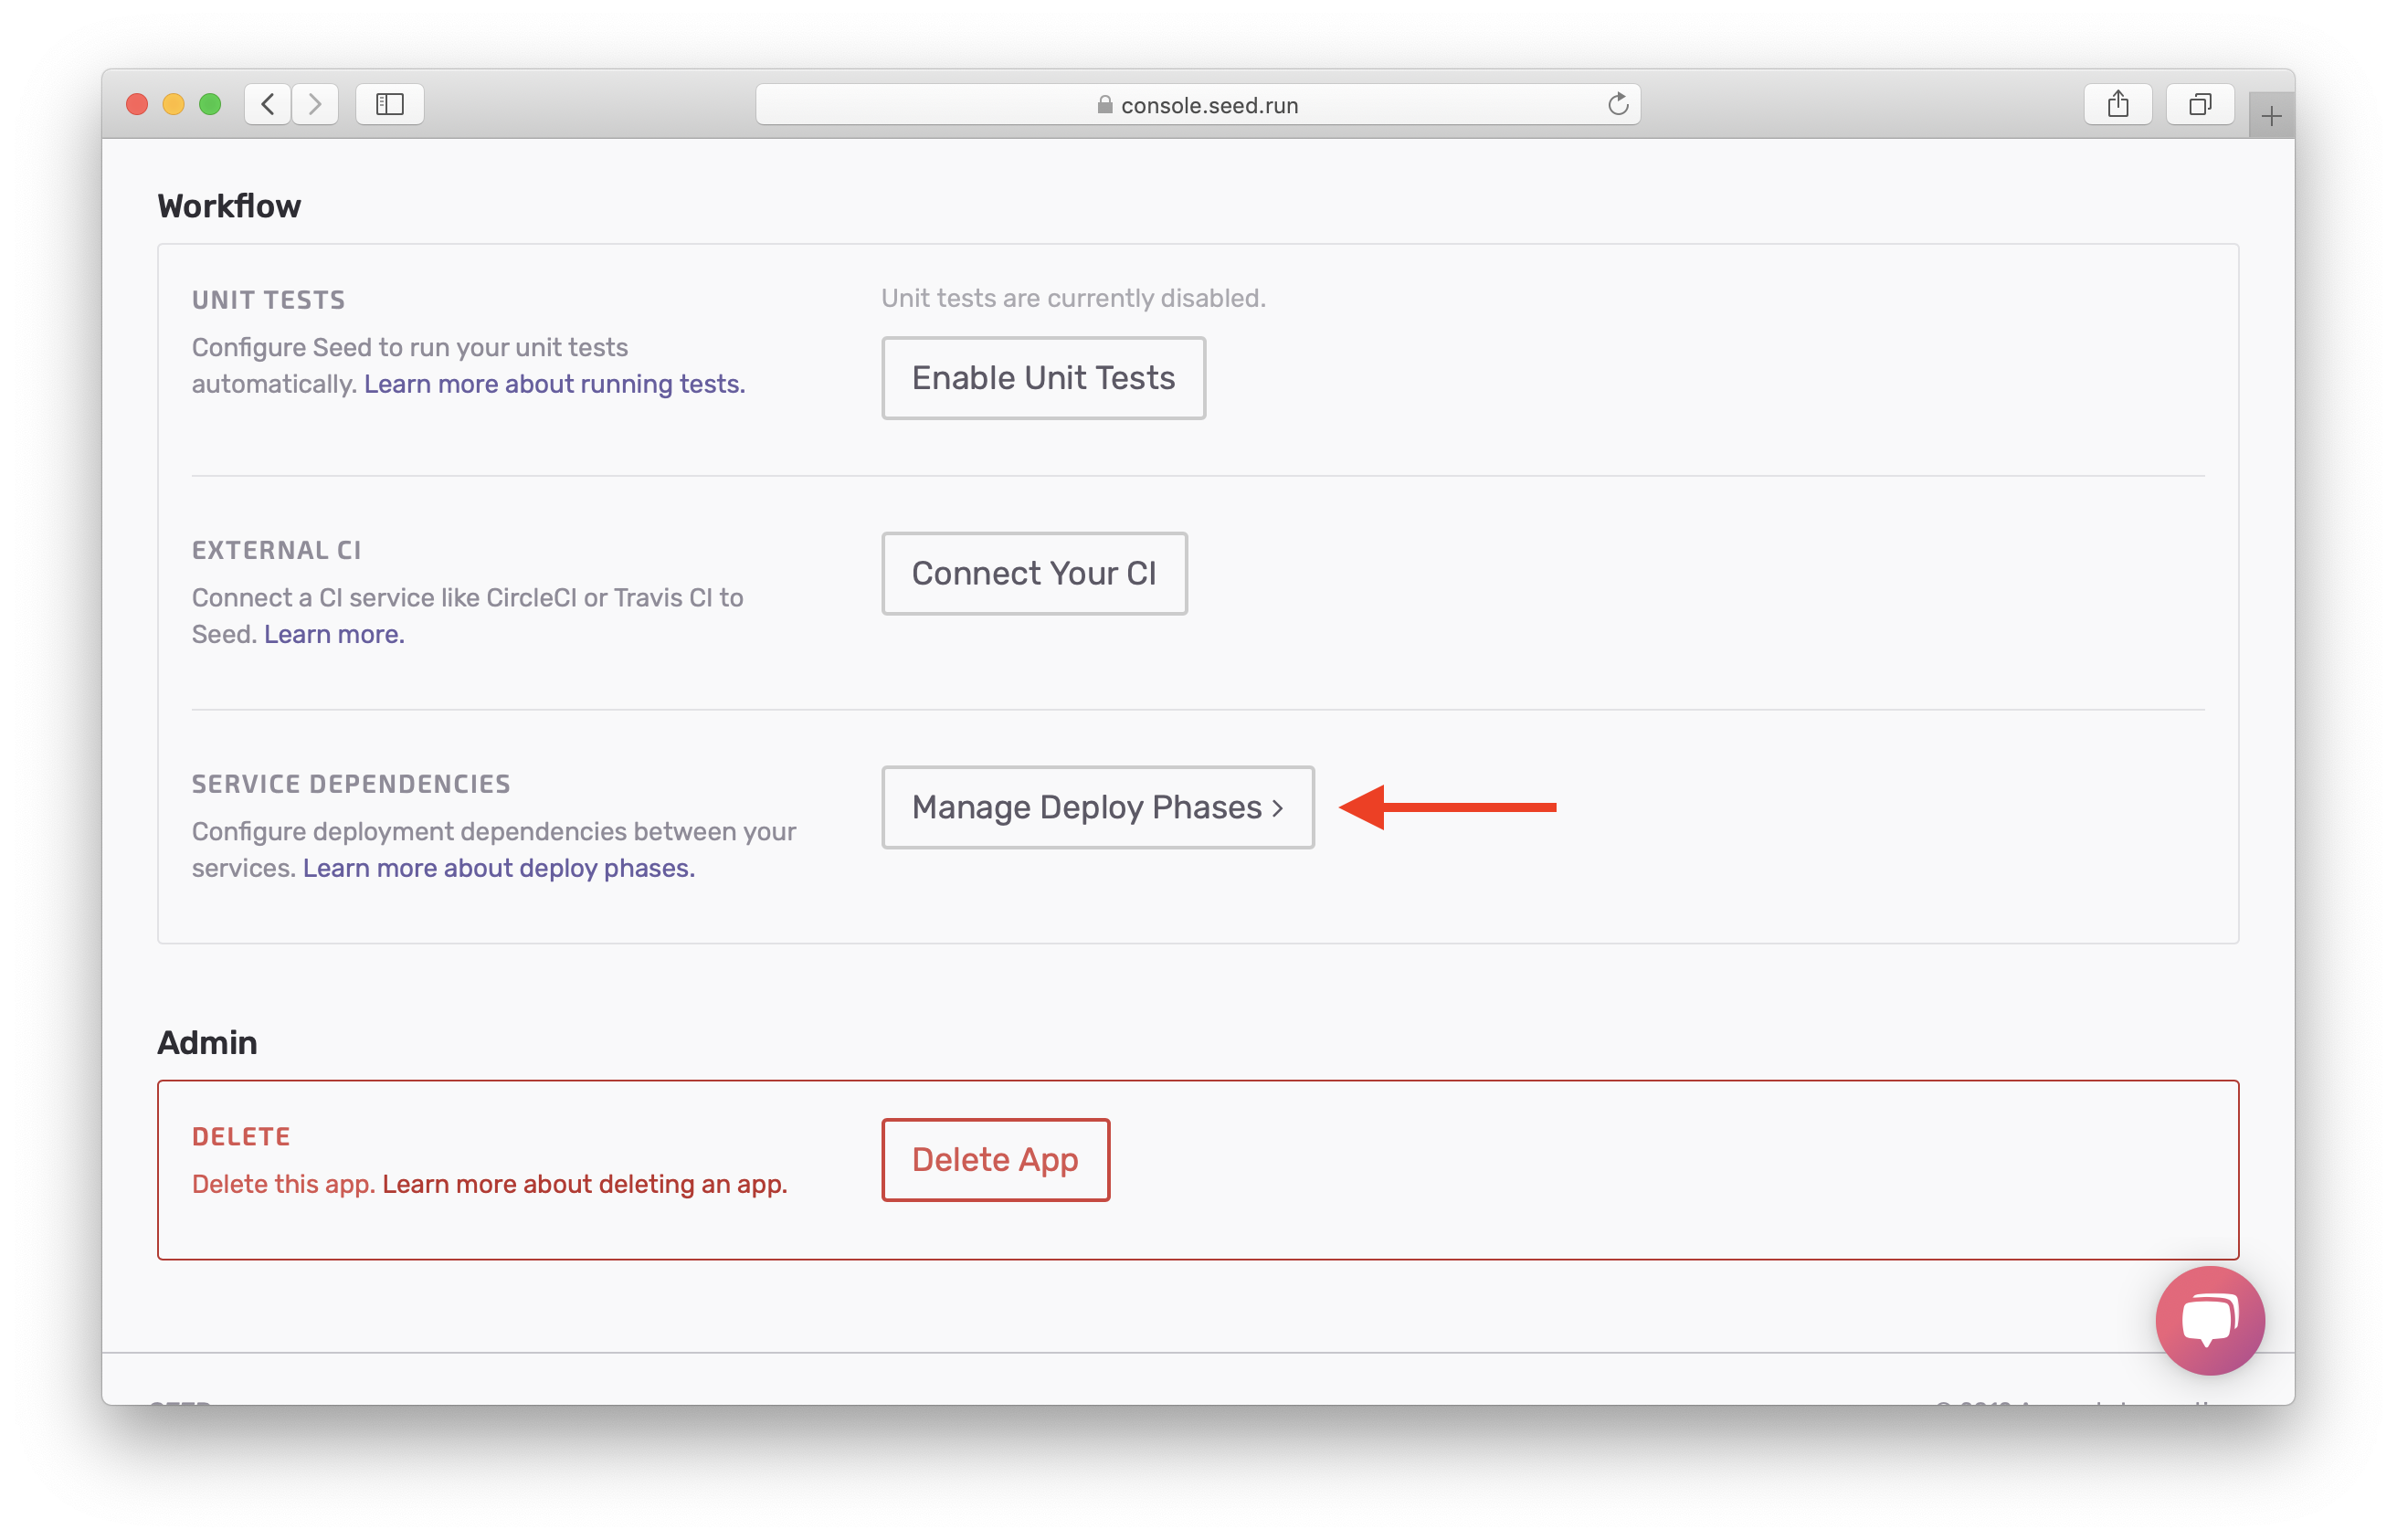 Hit Manage Deploy Phases screenshot